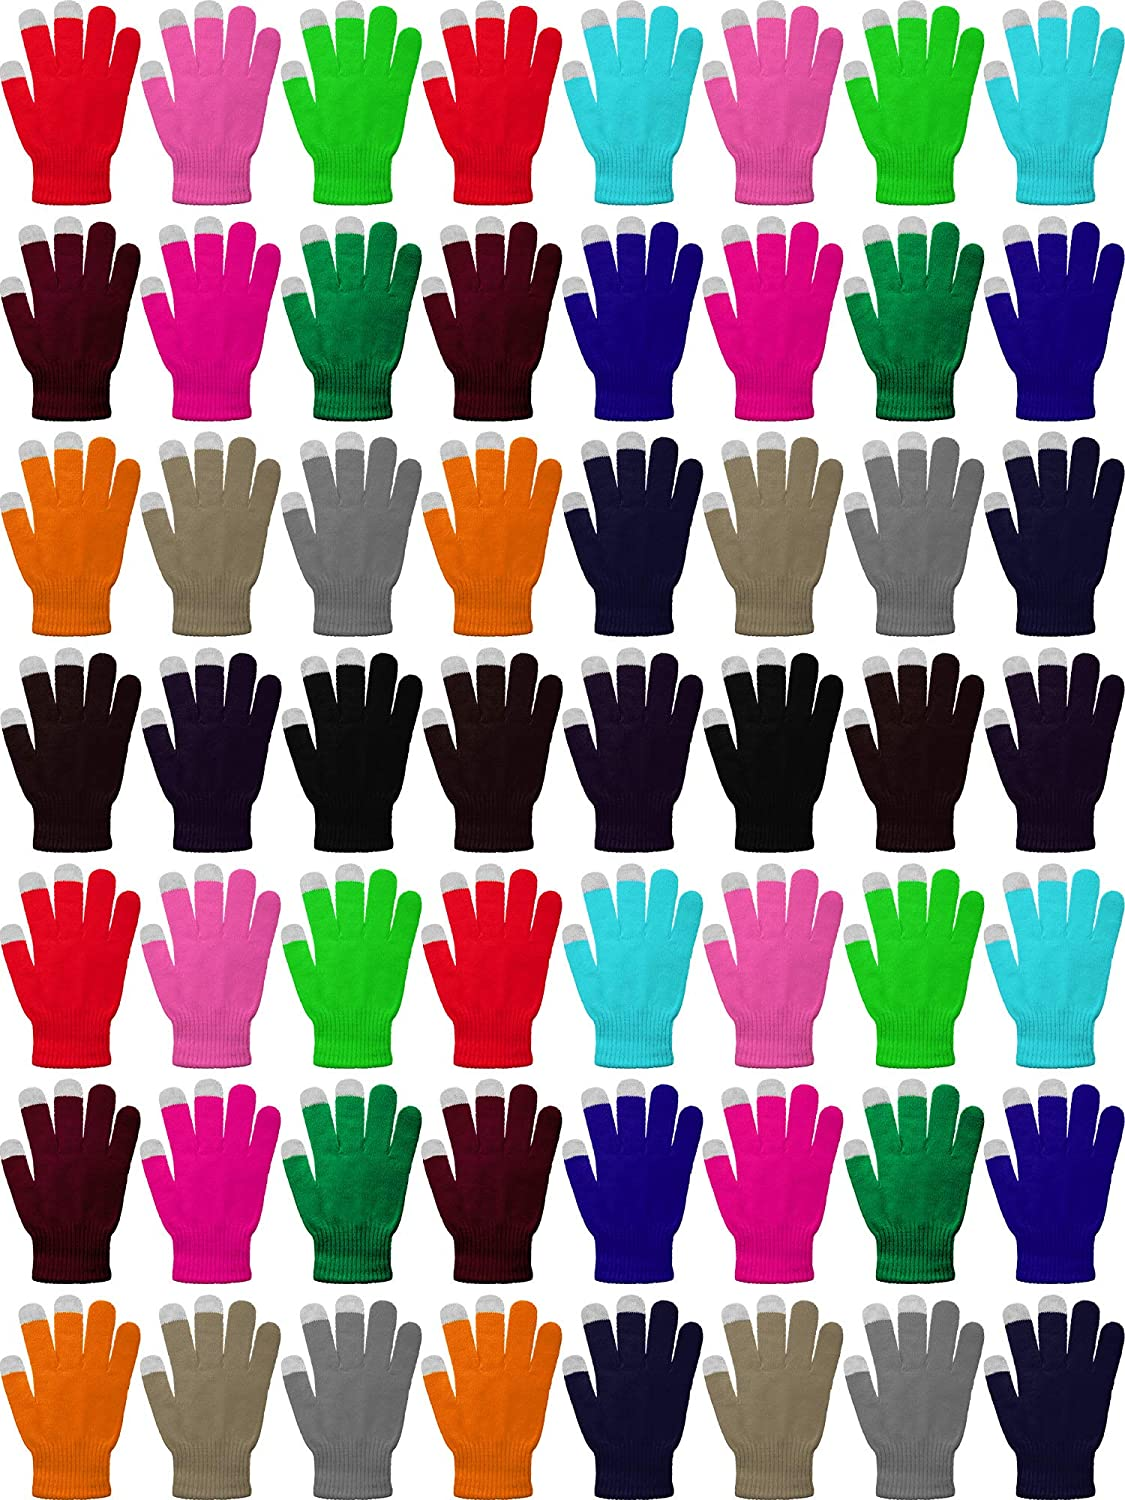 60 Pairs Touchscreen Gloves Winter Stretch Knitted Texting Gloves for Men Women (Multi-colors)